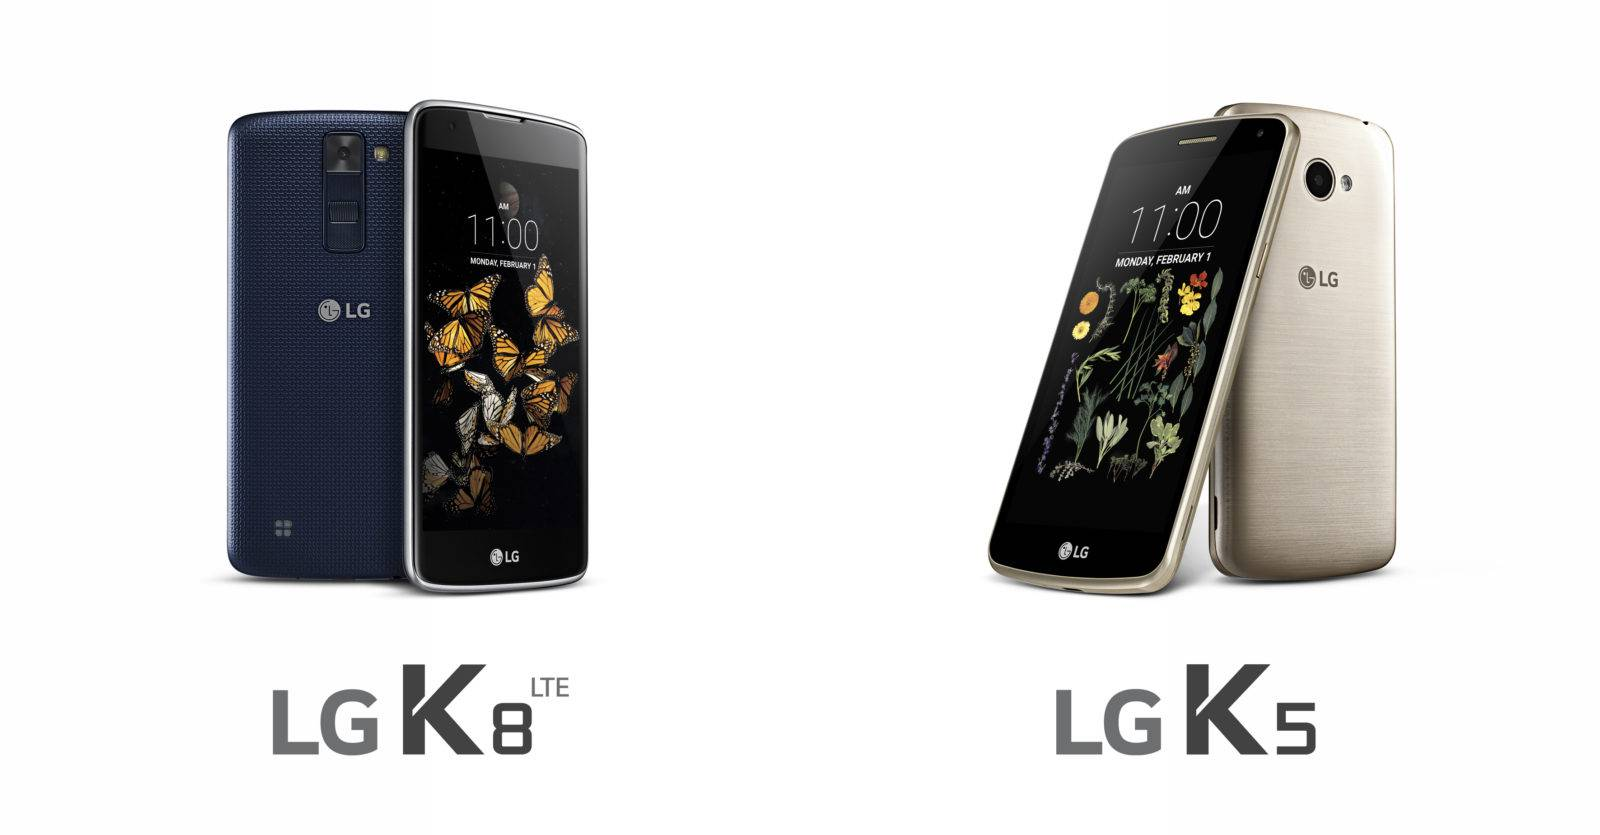 LG K5 and K8